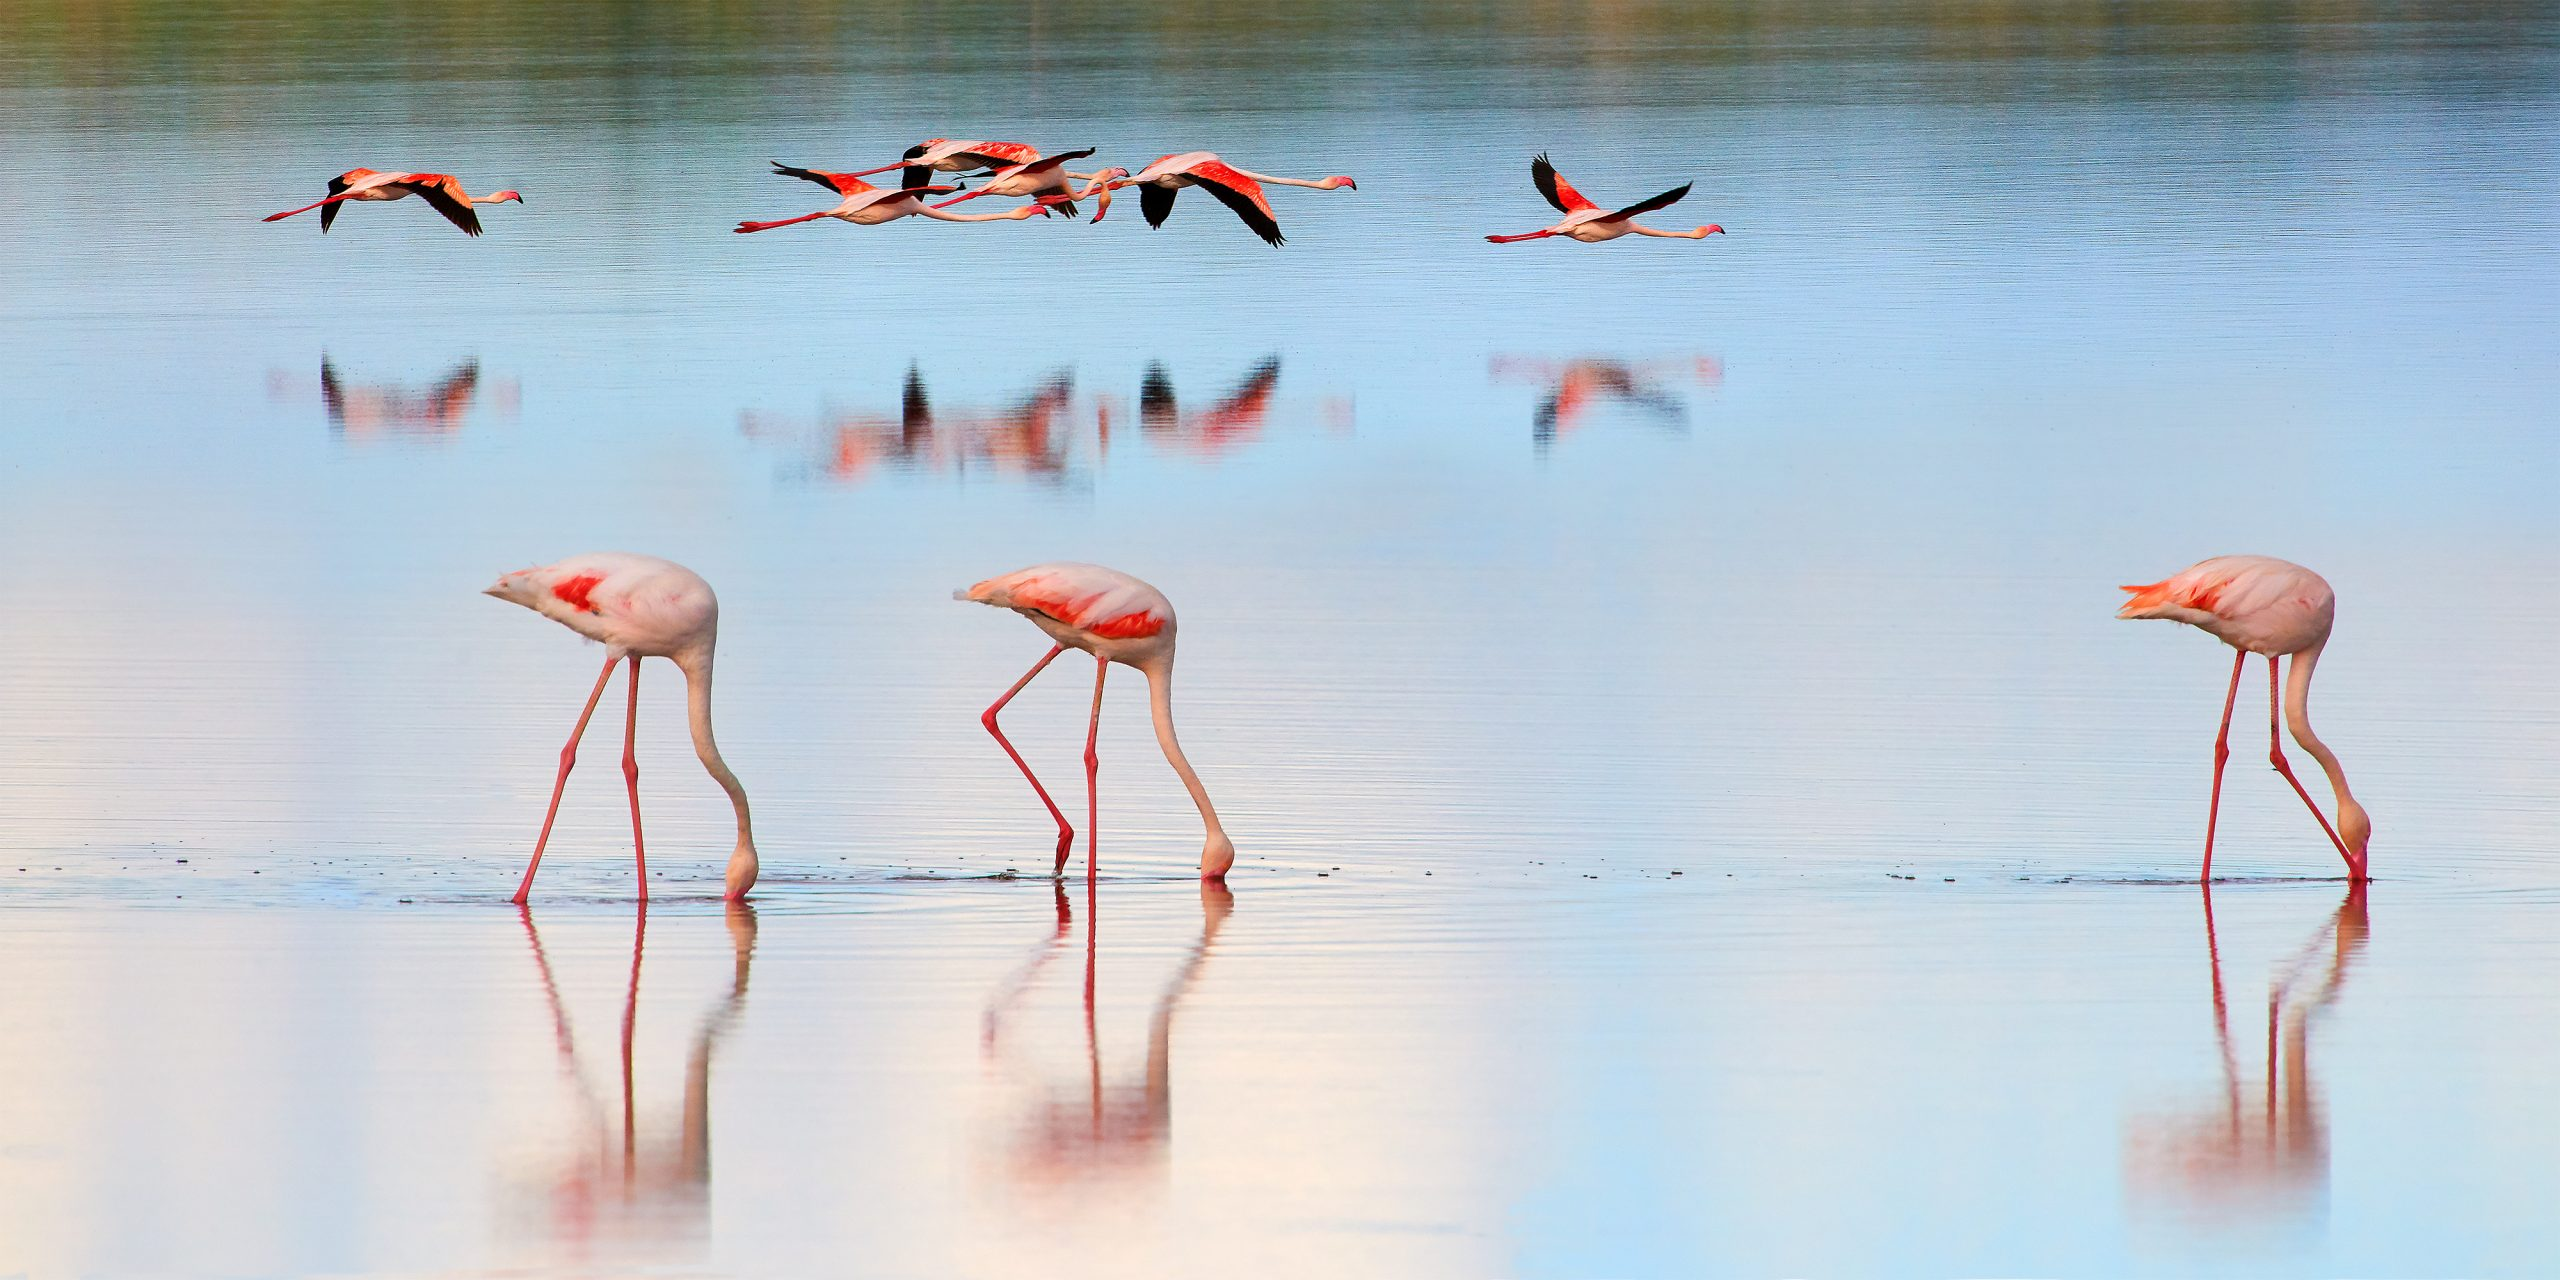 Flamingo's at twilight, some at flight and some feeding